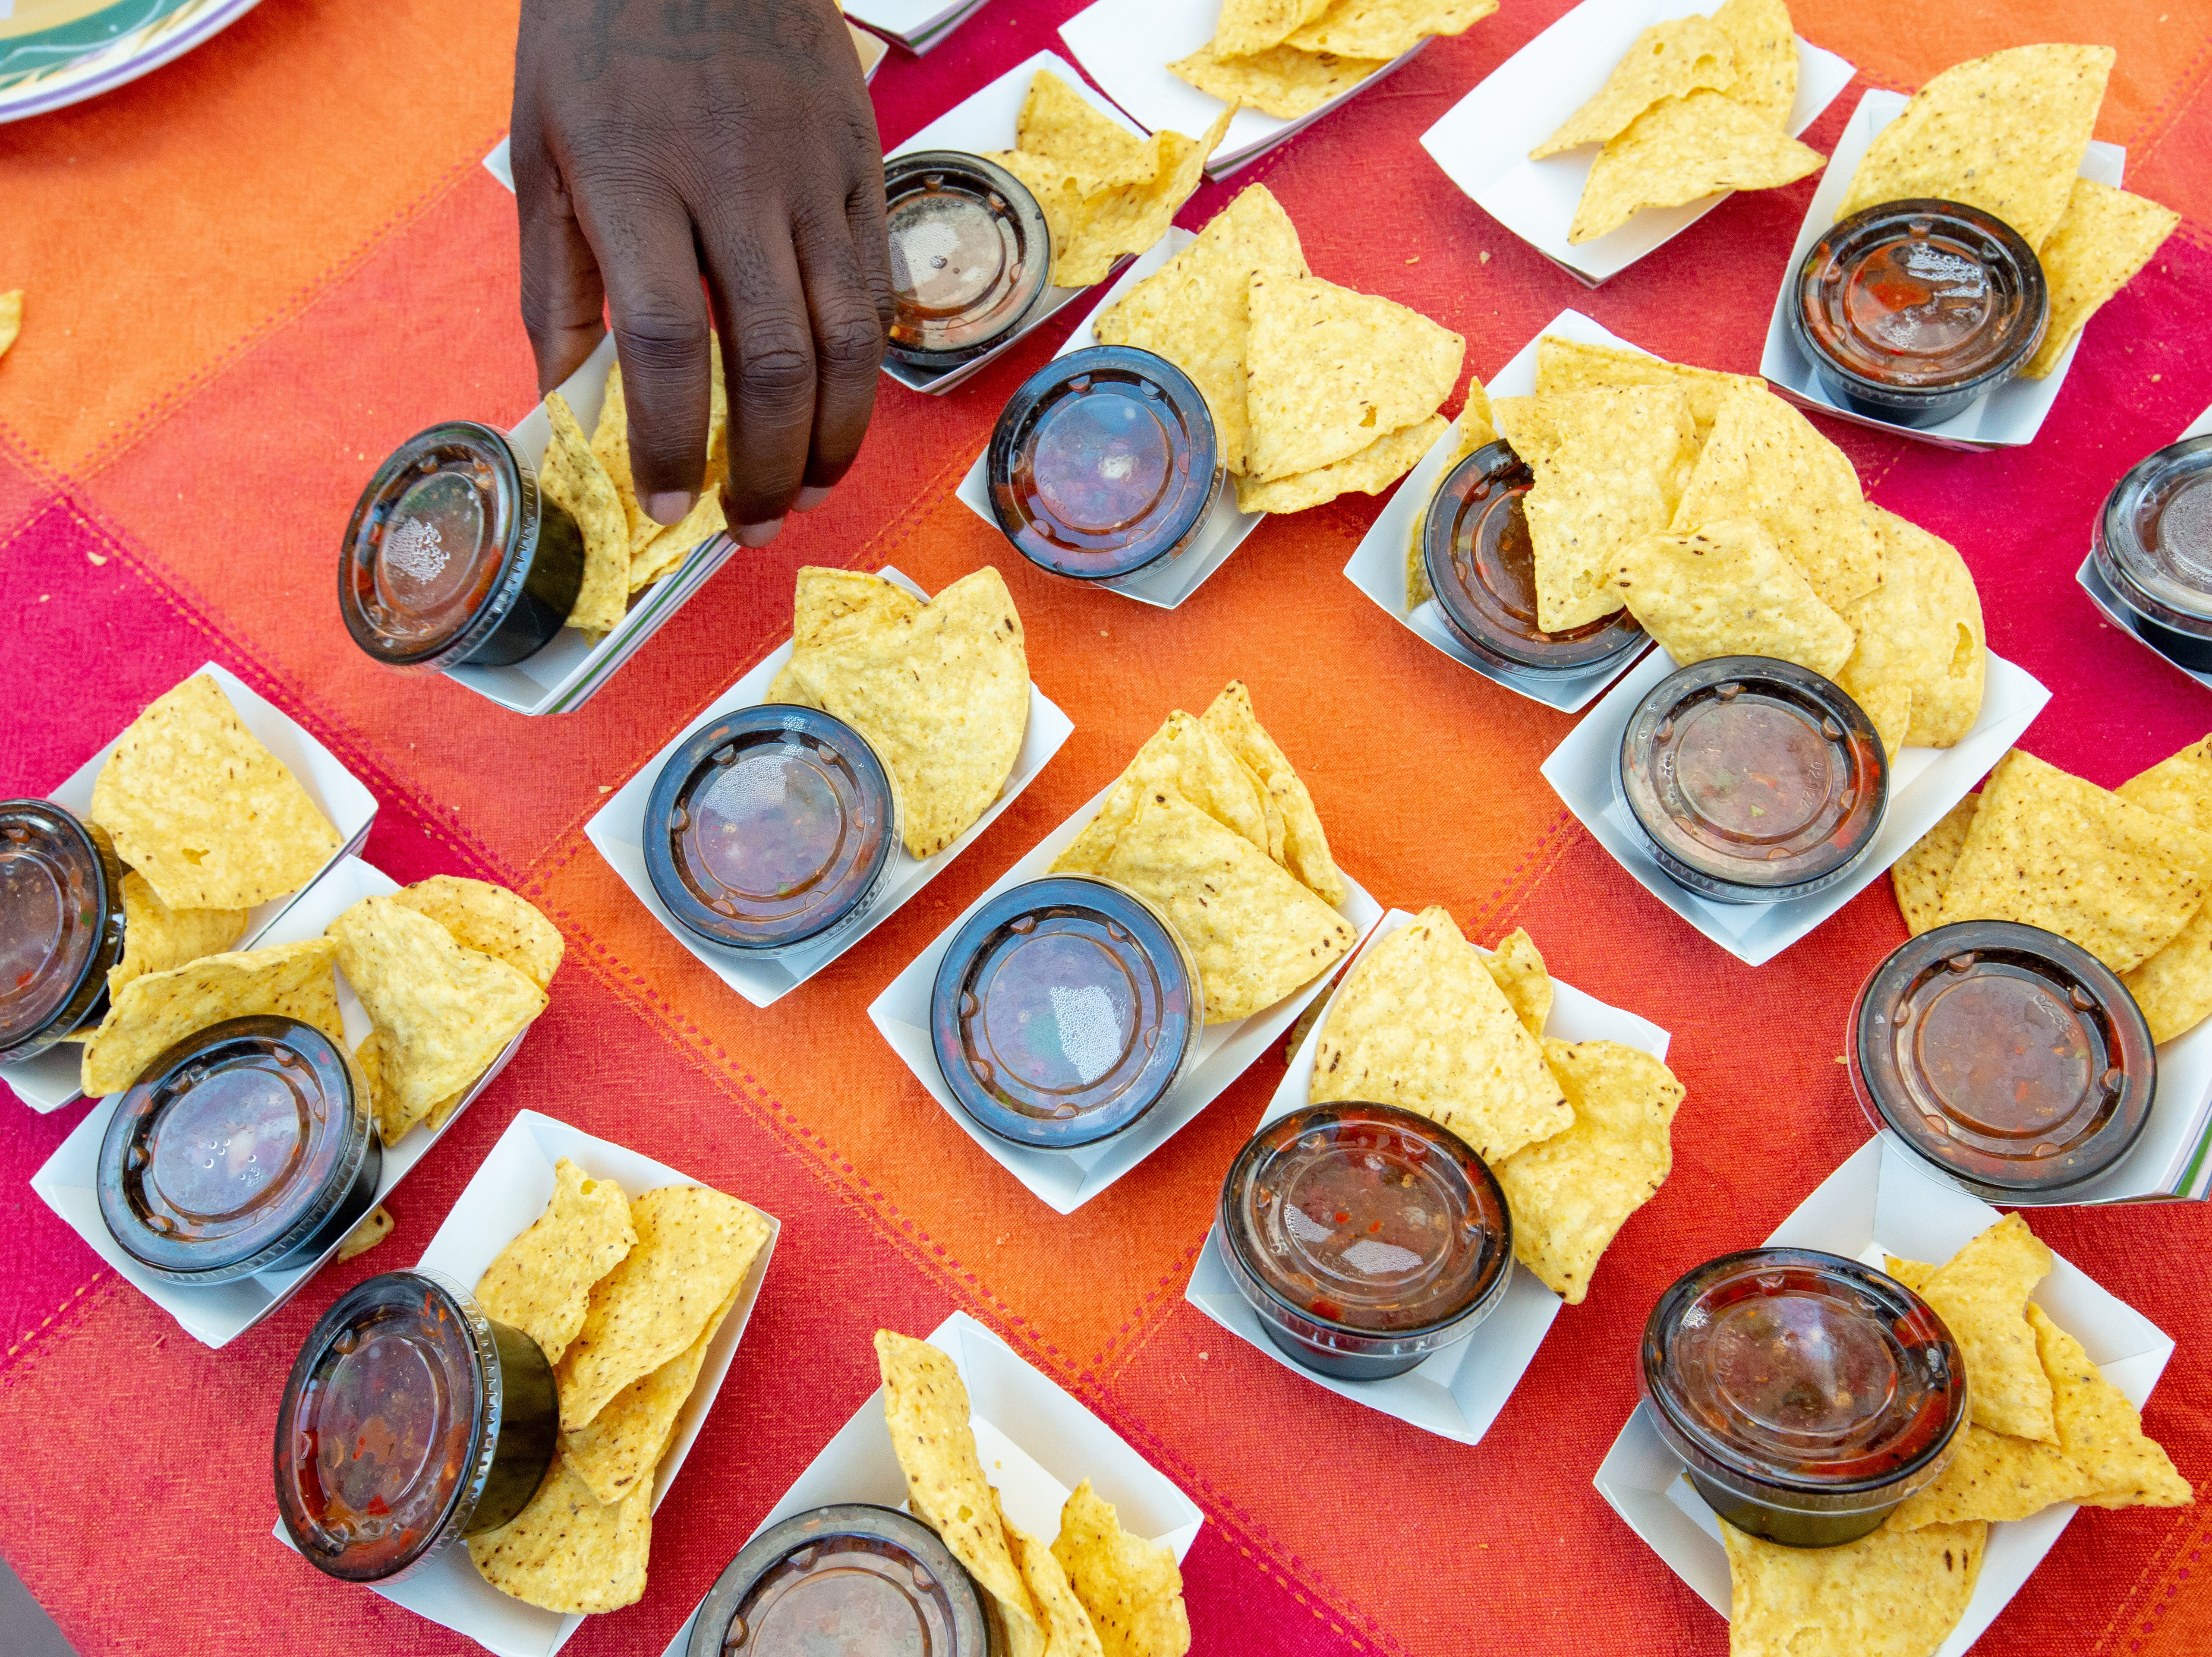 Garduño's Restaurant & Cantina chip and salsa samples are available for patrons during the 2018 Las Cruces Summer Beer Festival and Salsa Fest at Plaza de Las Cruces on Saturday, August 18, 2018.